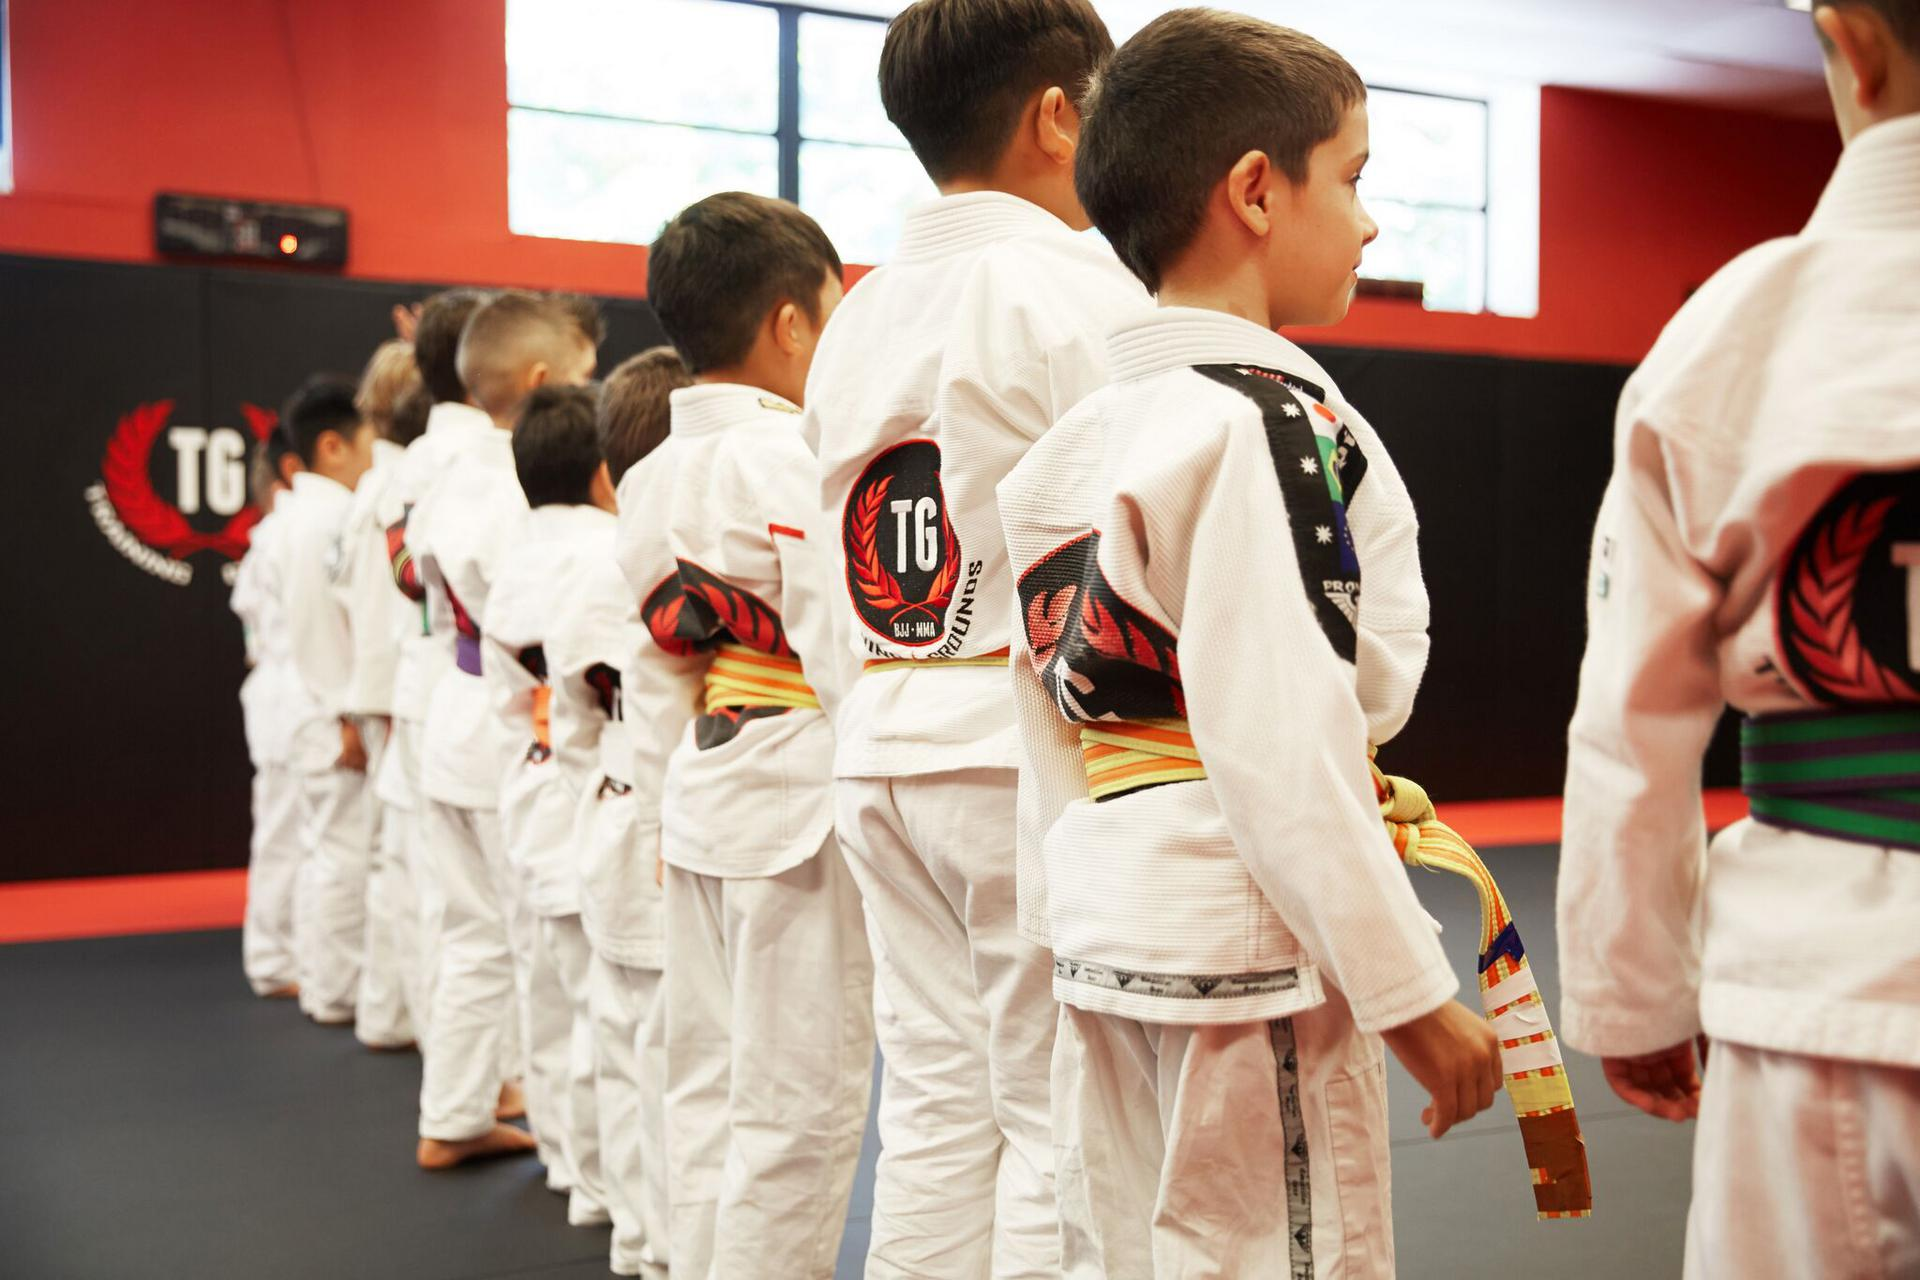 a line of children with their backs turned at the start of a kids martial arts class